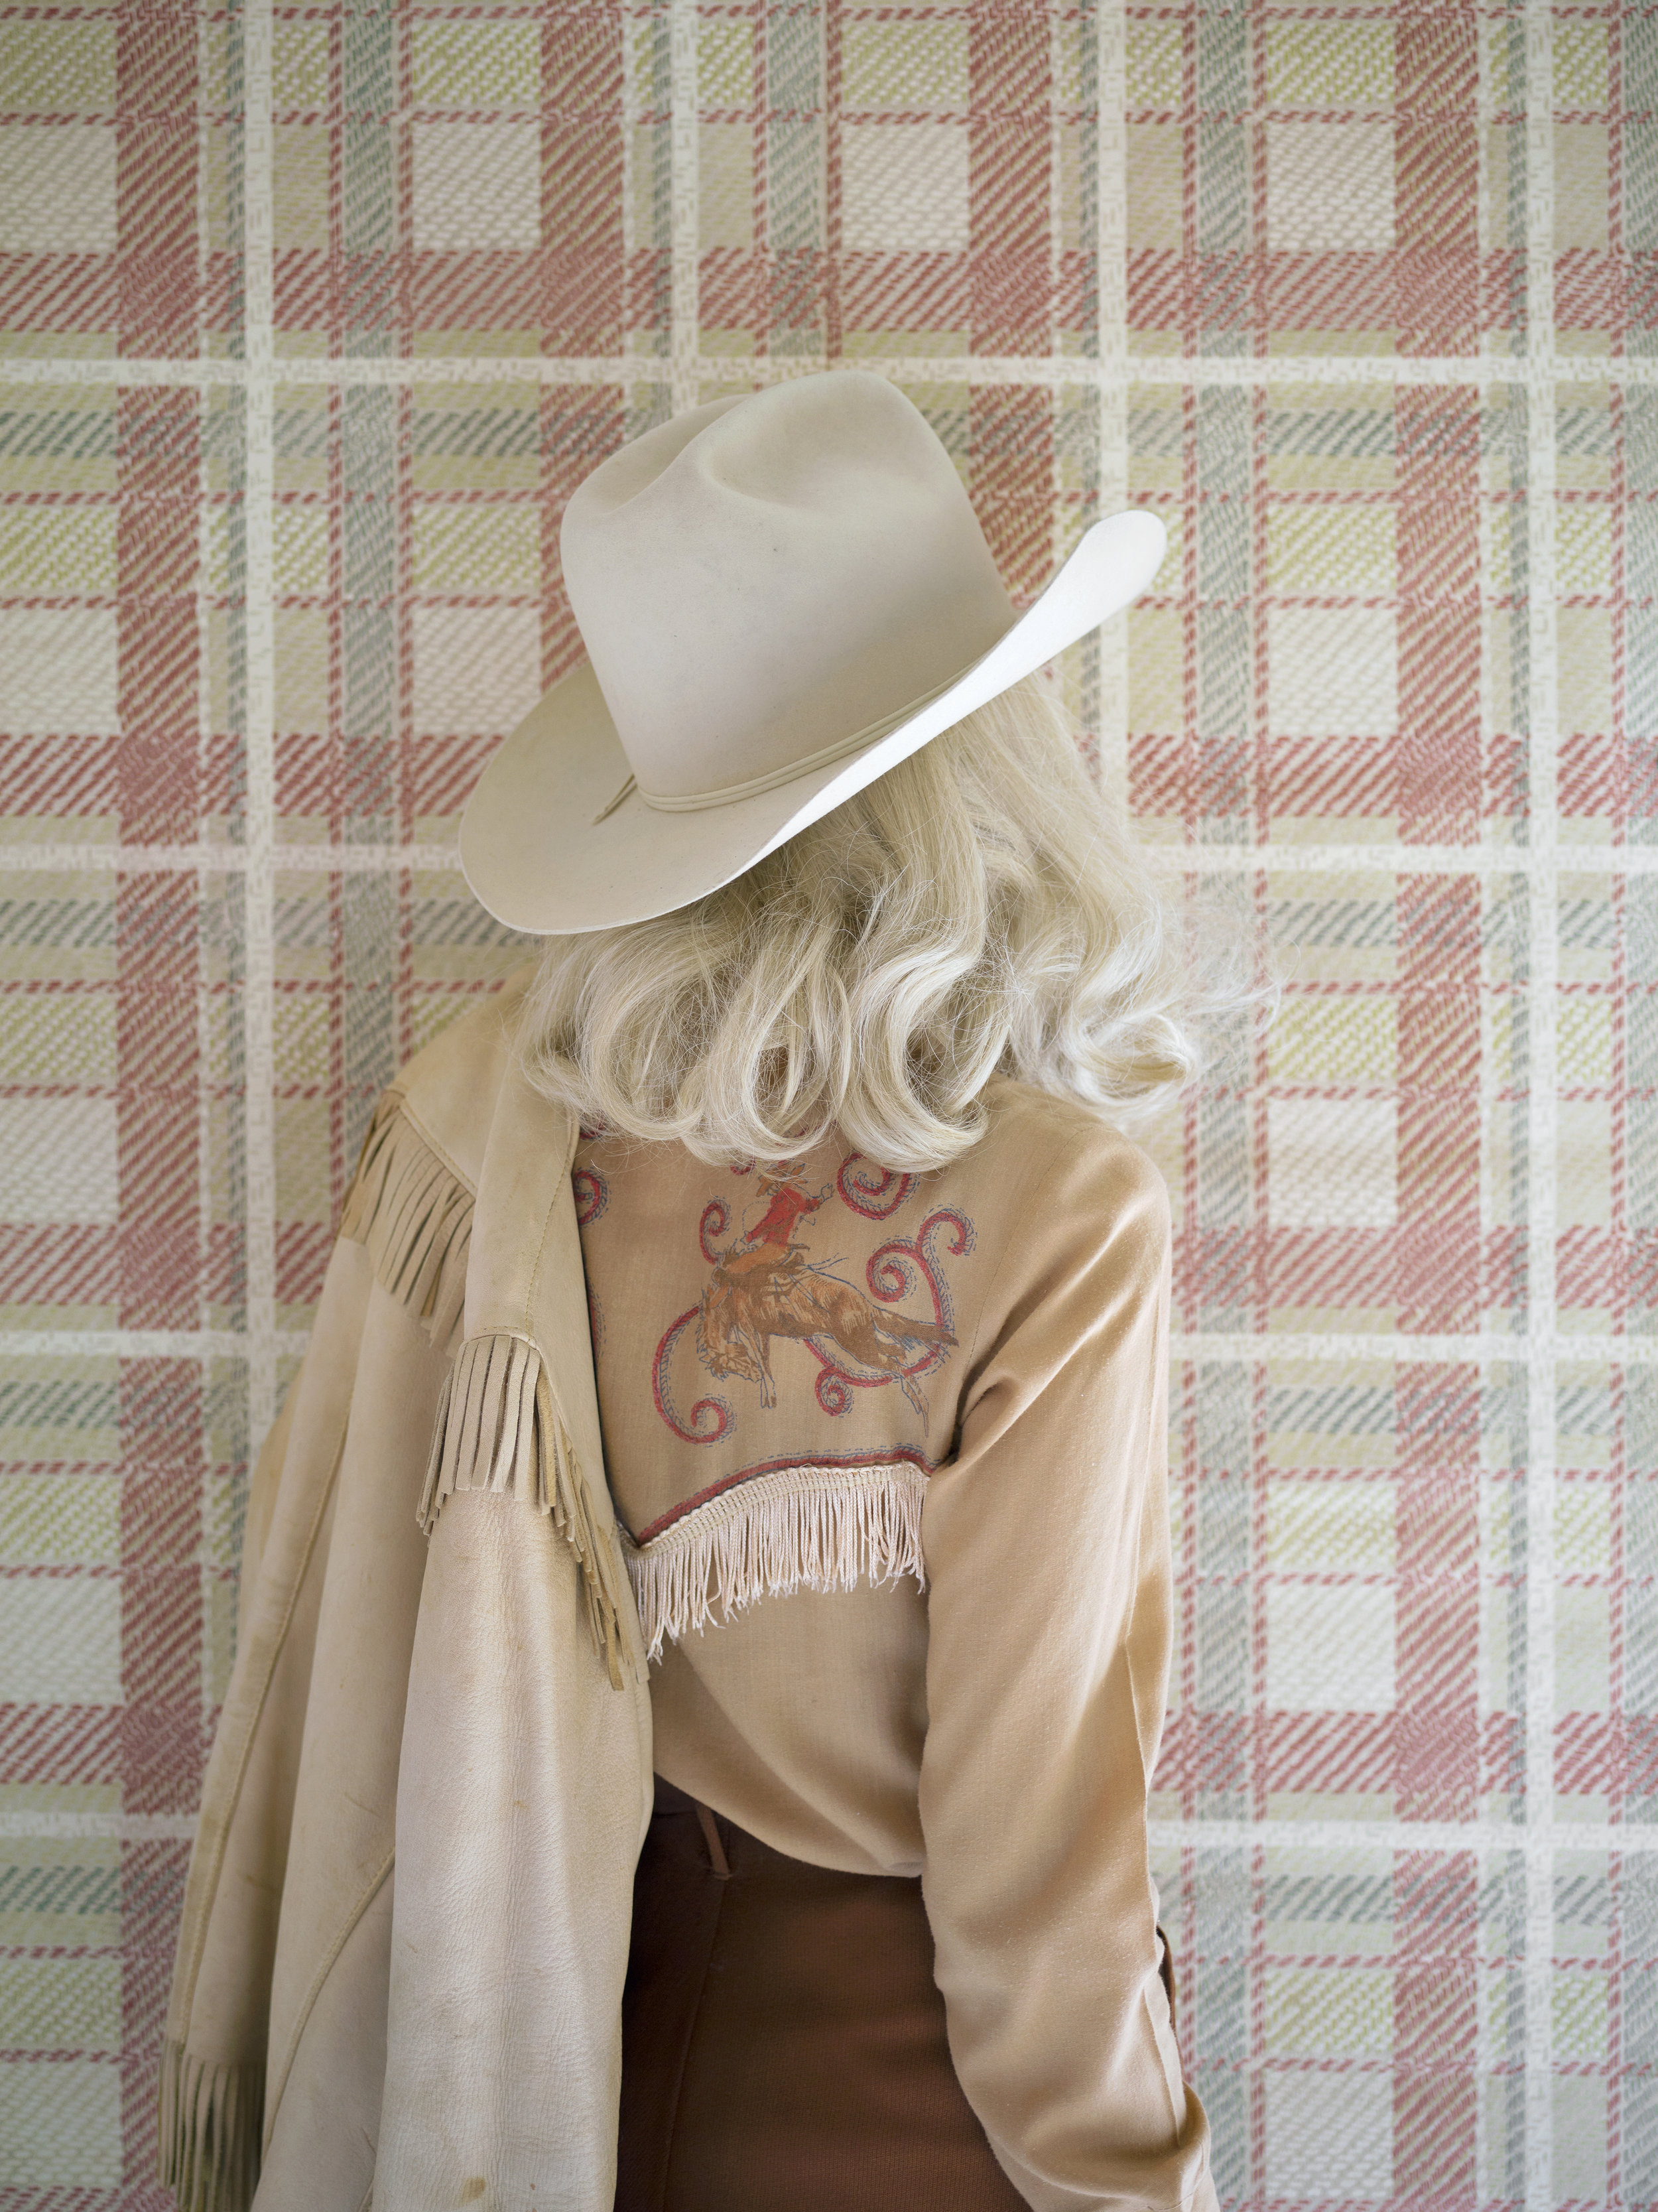 The Cowboy, 2016 © Anja Niemi. Courtesy of The Ravestijn Gallery.